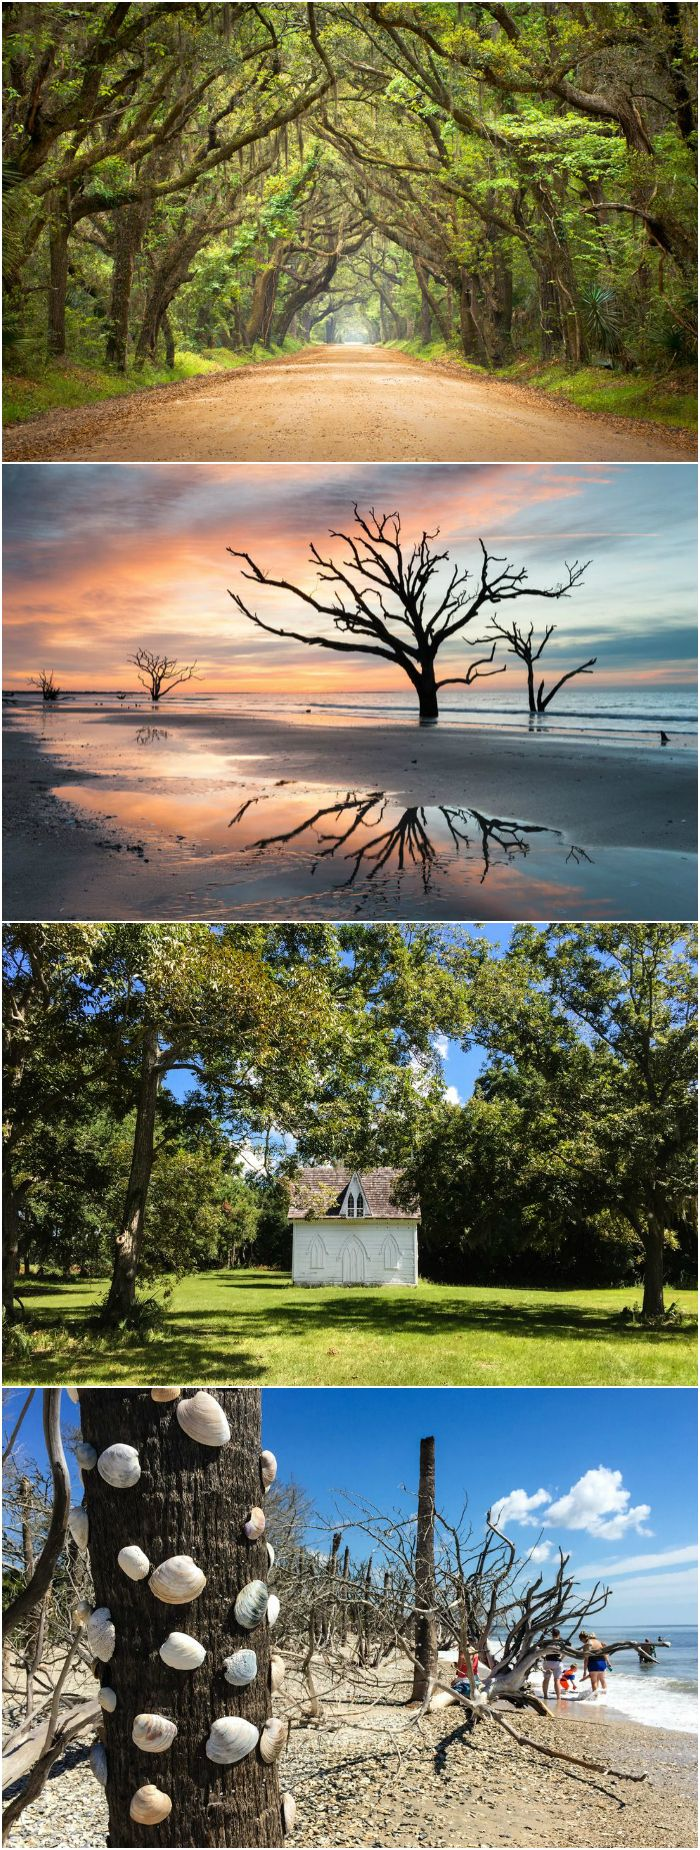 South Carolina is famous for its stunning landscapes and rich natural history, and if there's one place that has it all, it's Botany Bay Plantation.